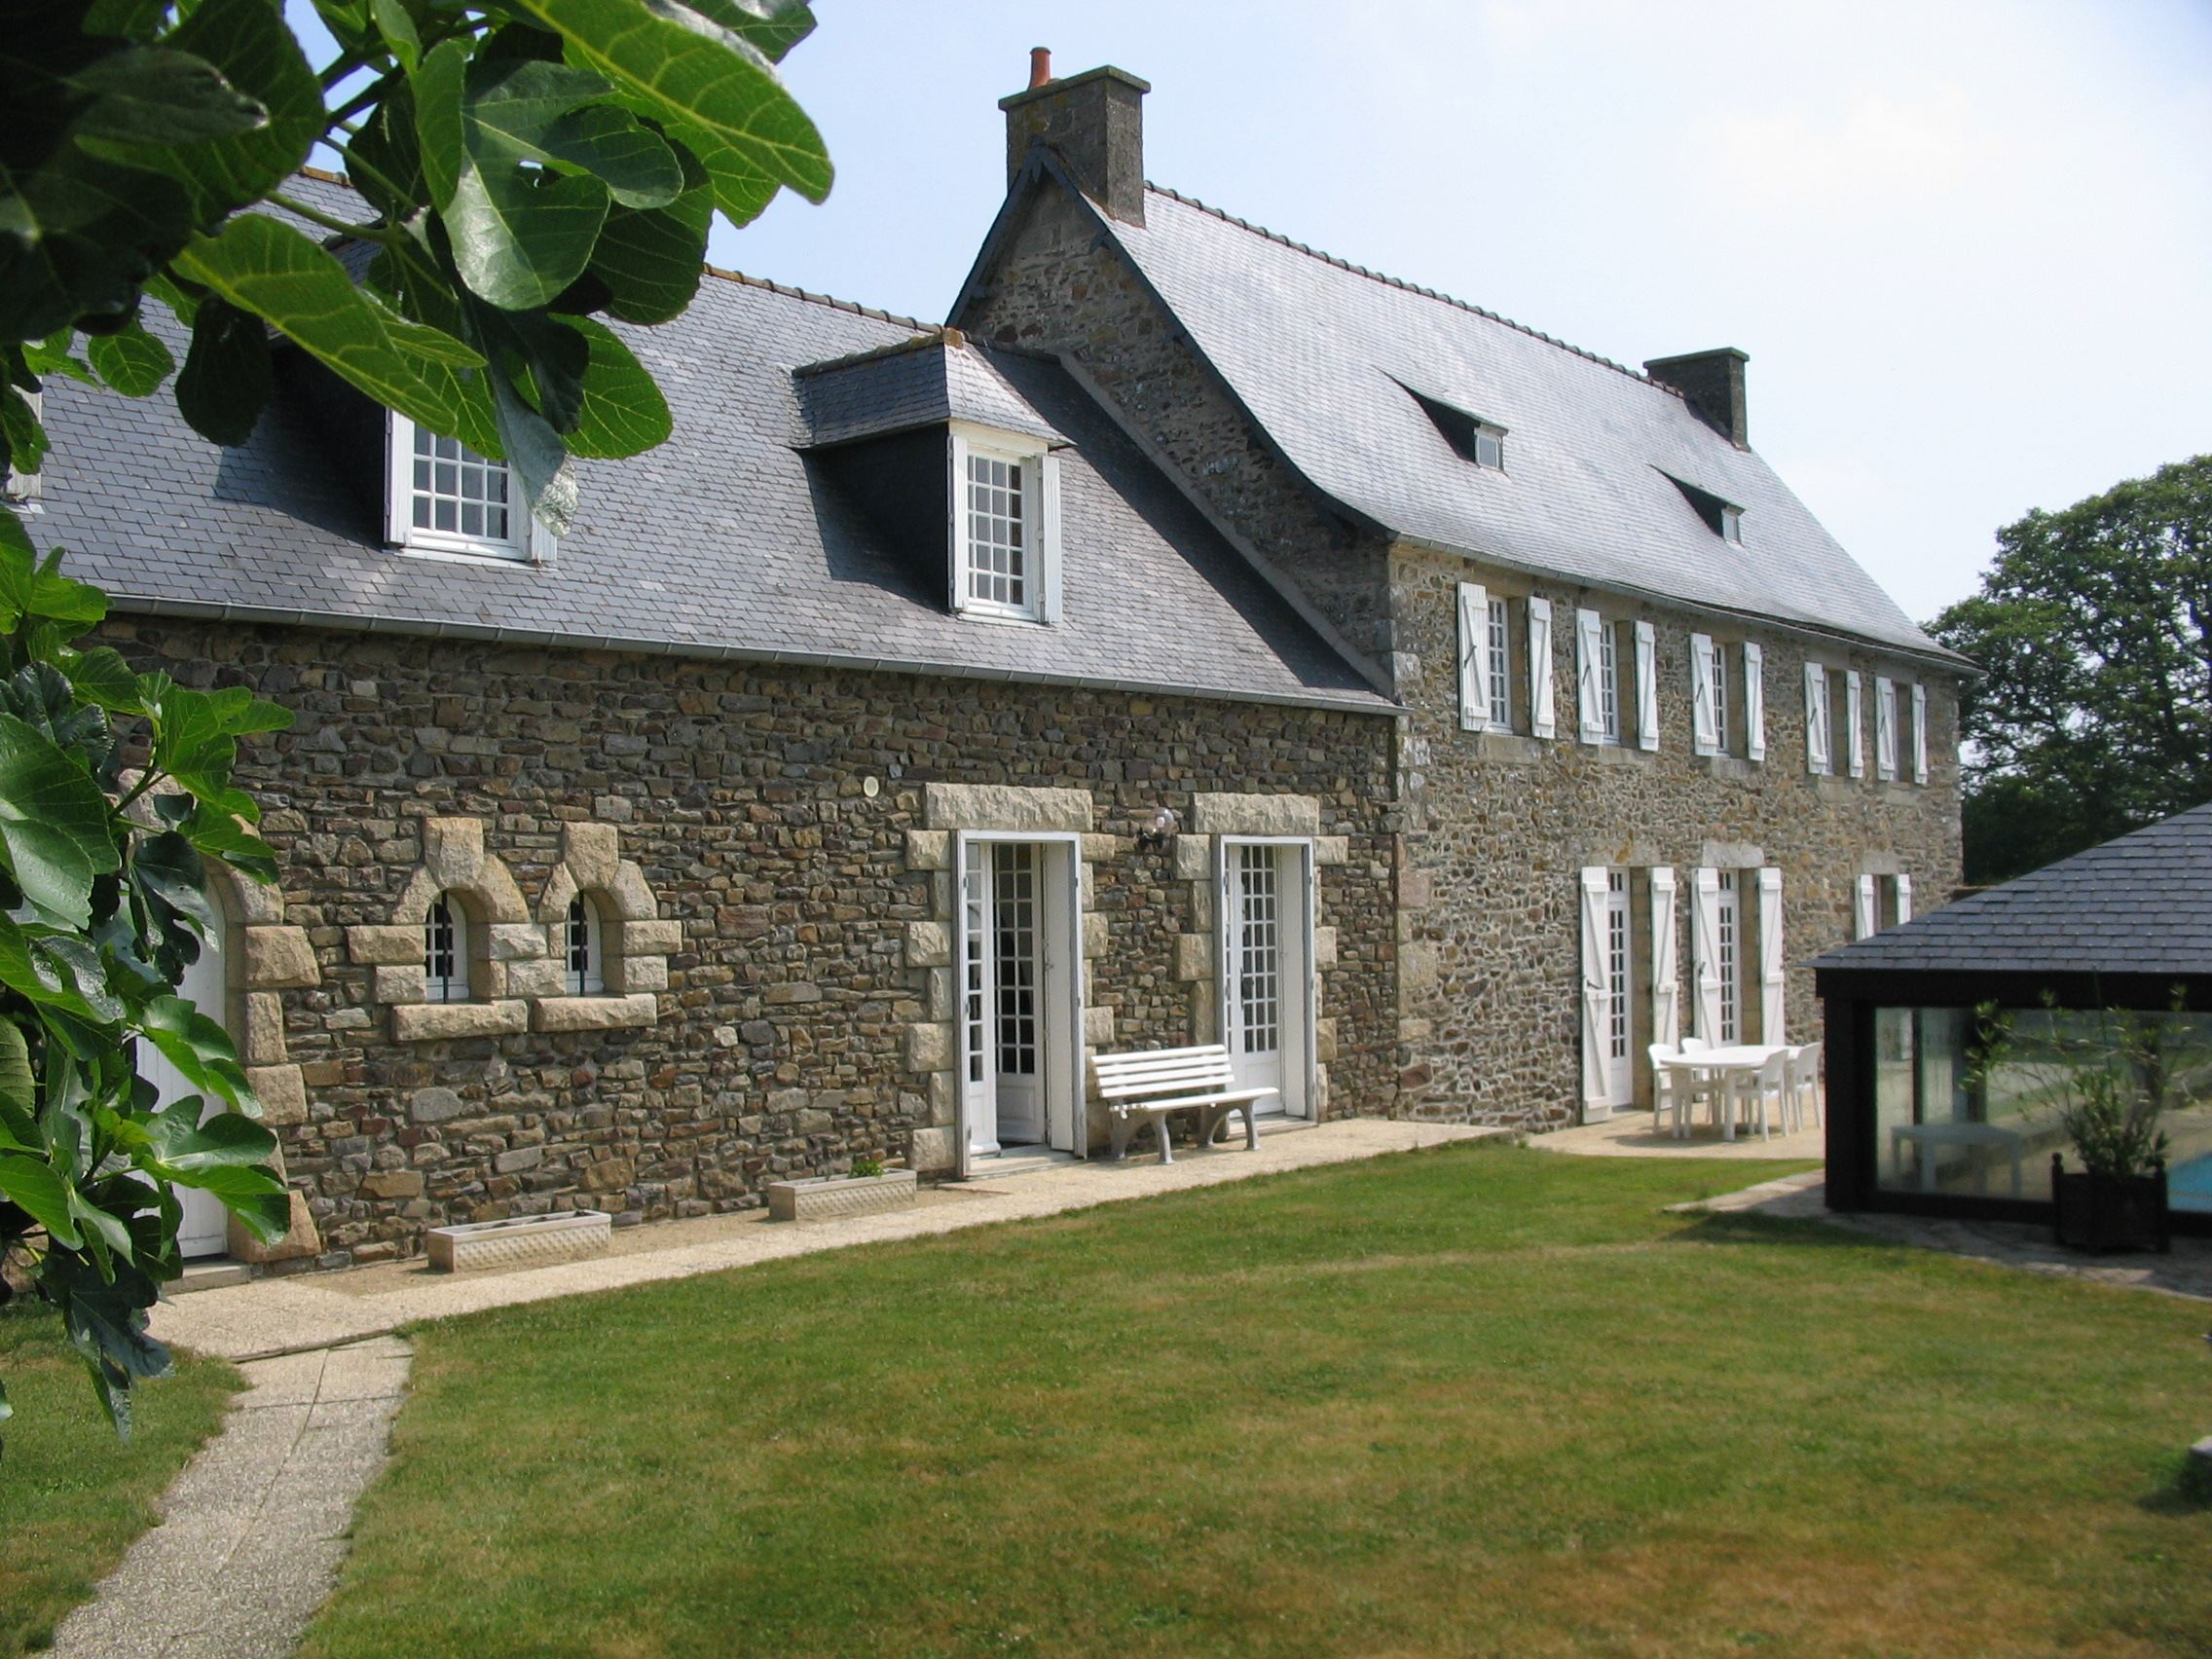 Single Family Home for Sale at House Other Brittany, Brittany, 22380 France